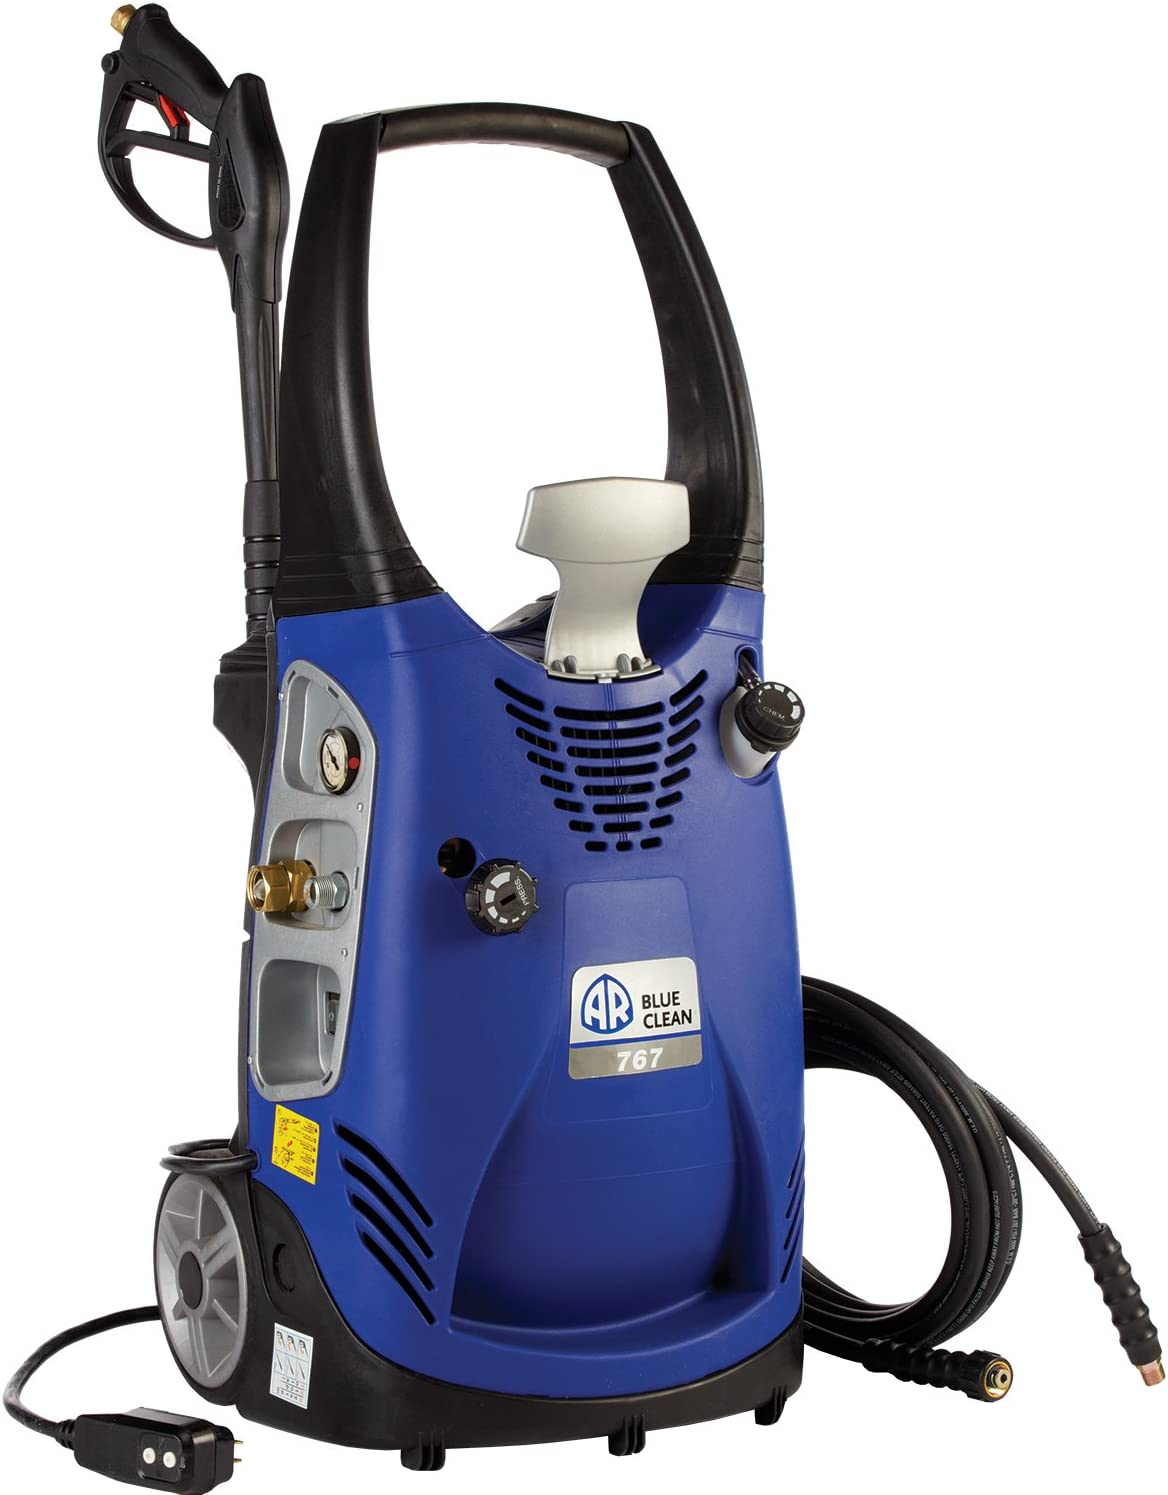 AR Blue Clean AR767 Industrial Grade 1,900 PSI 2.1 GPM Electric Pressure Washer